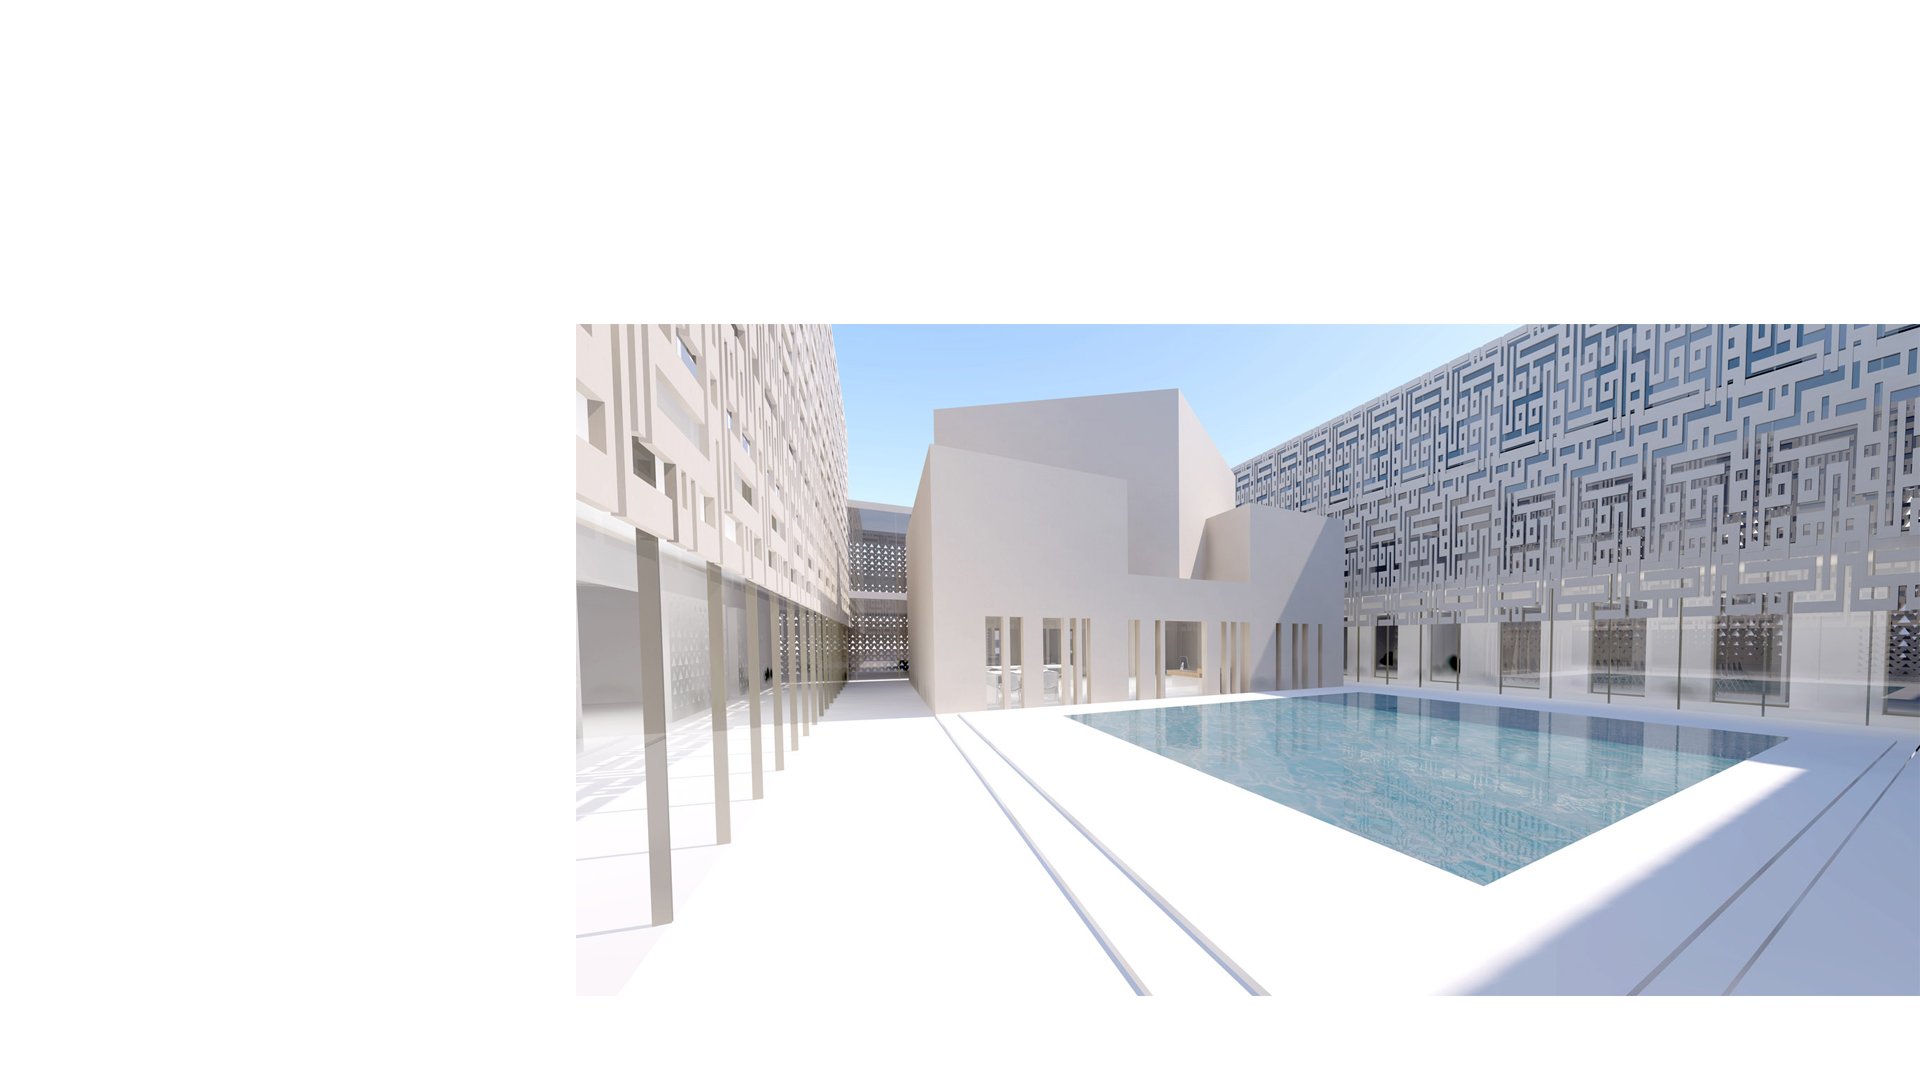 Main Court with Library and Art School at the Addiriyah Arts Centre and Teaching Academy in Riyadh